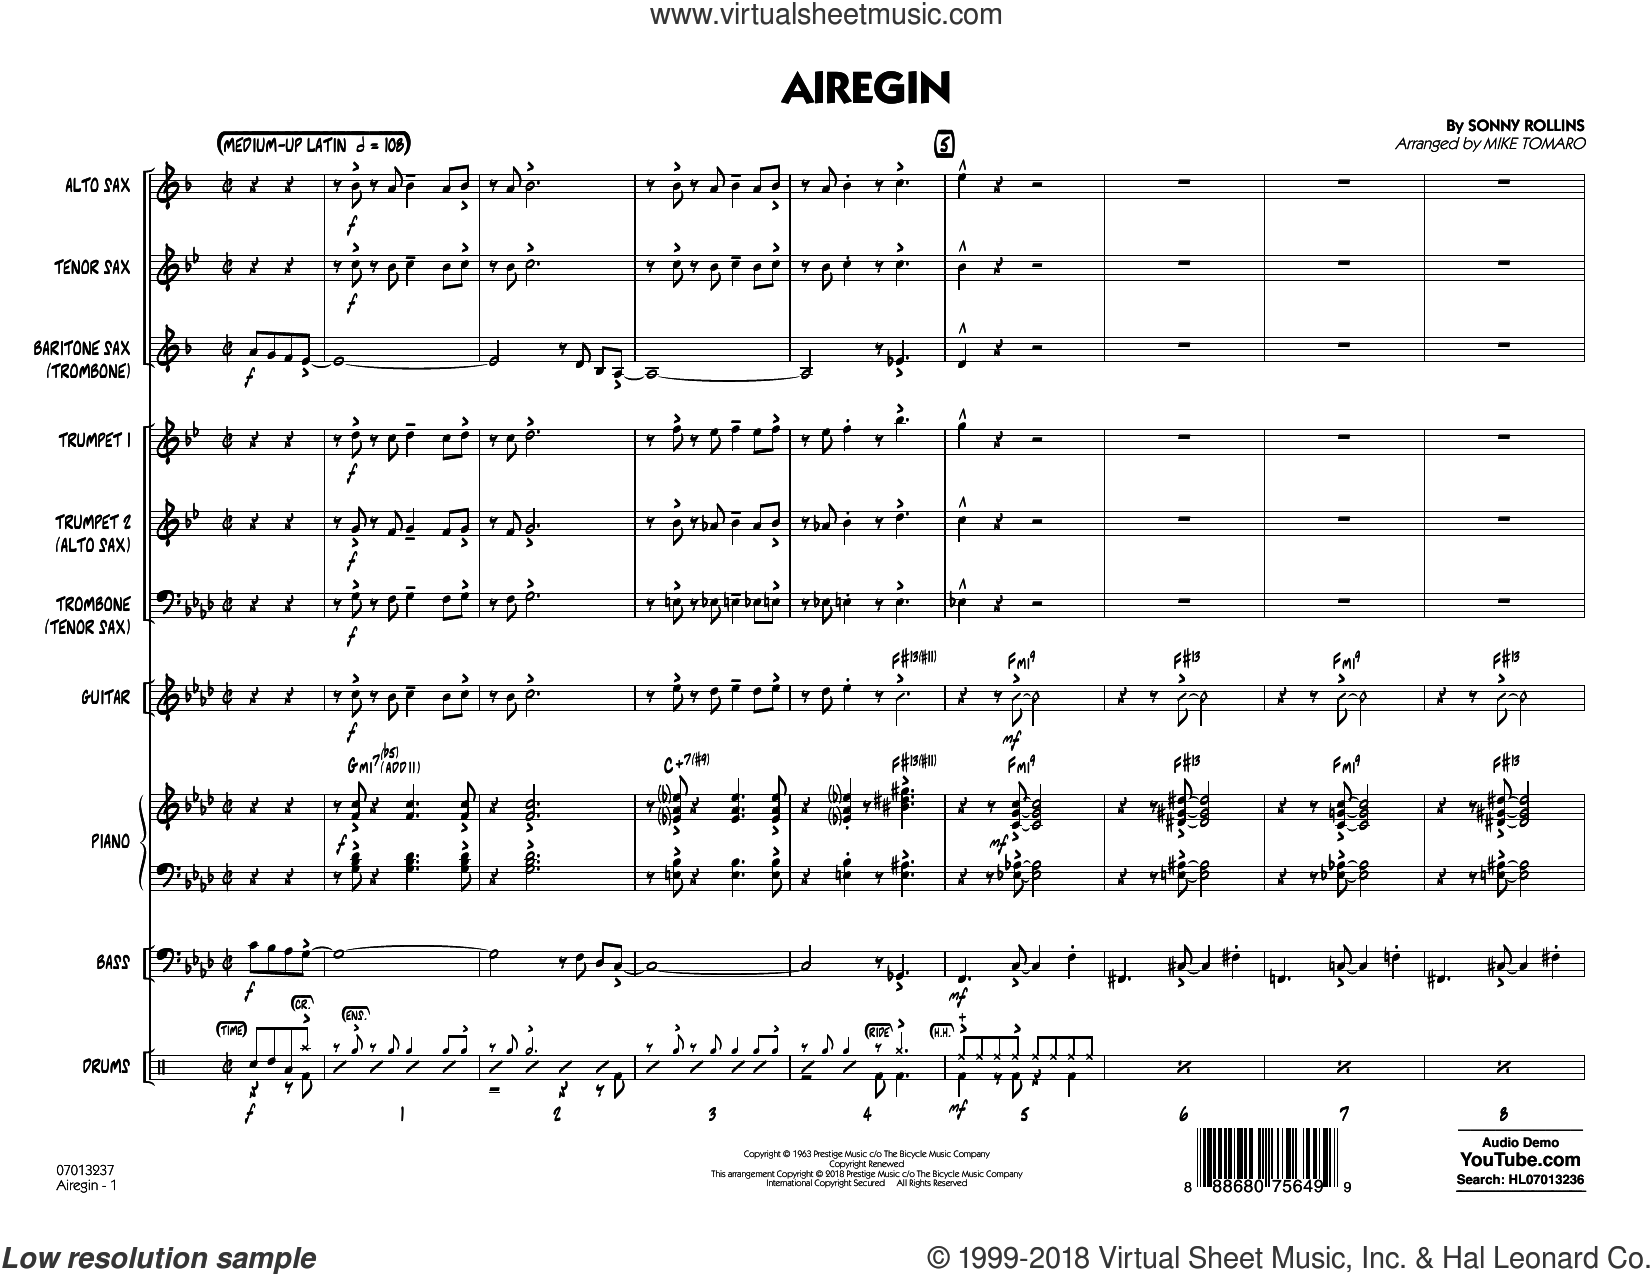 Airegin (arr. Mike Tomaro) (COMPLETE) sheet music for jazz band by John Coltrane, Mike Tomaro and Sonny Rollins, intermediate skill level